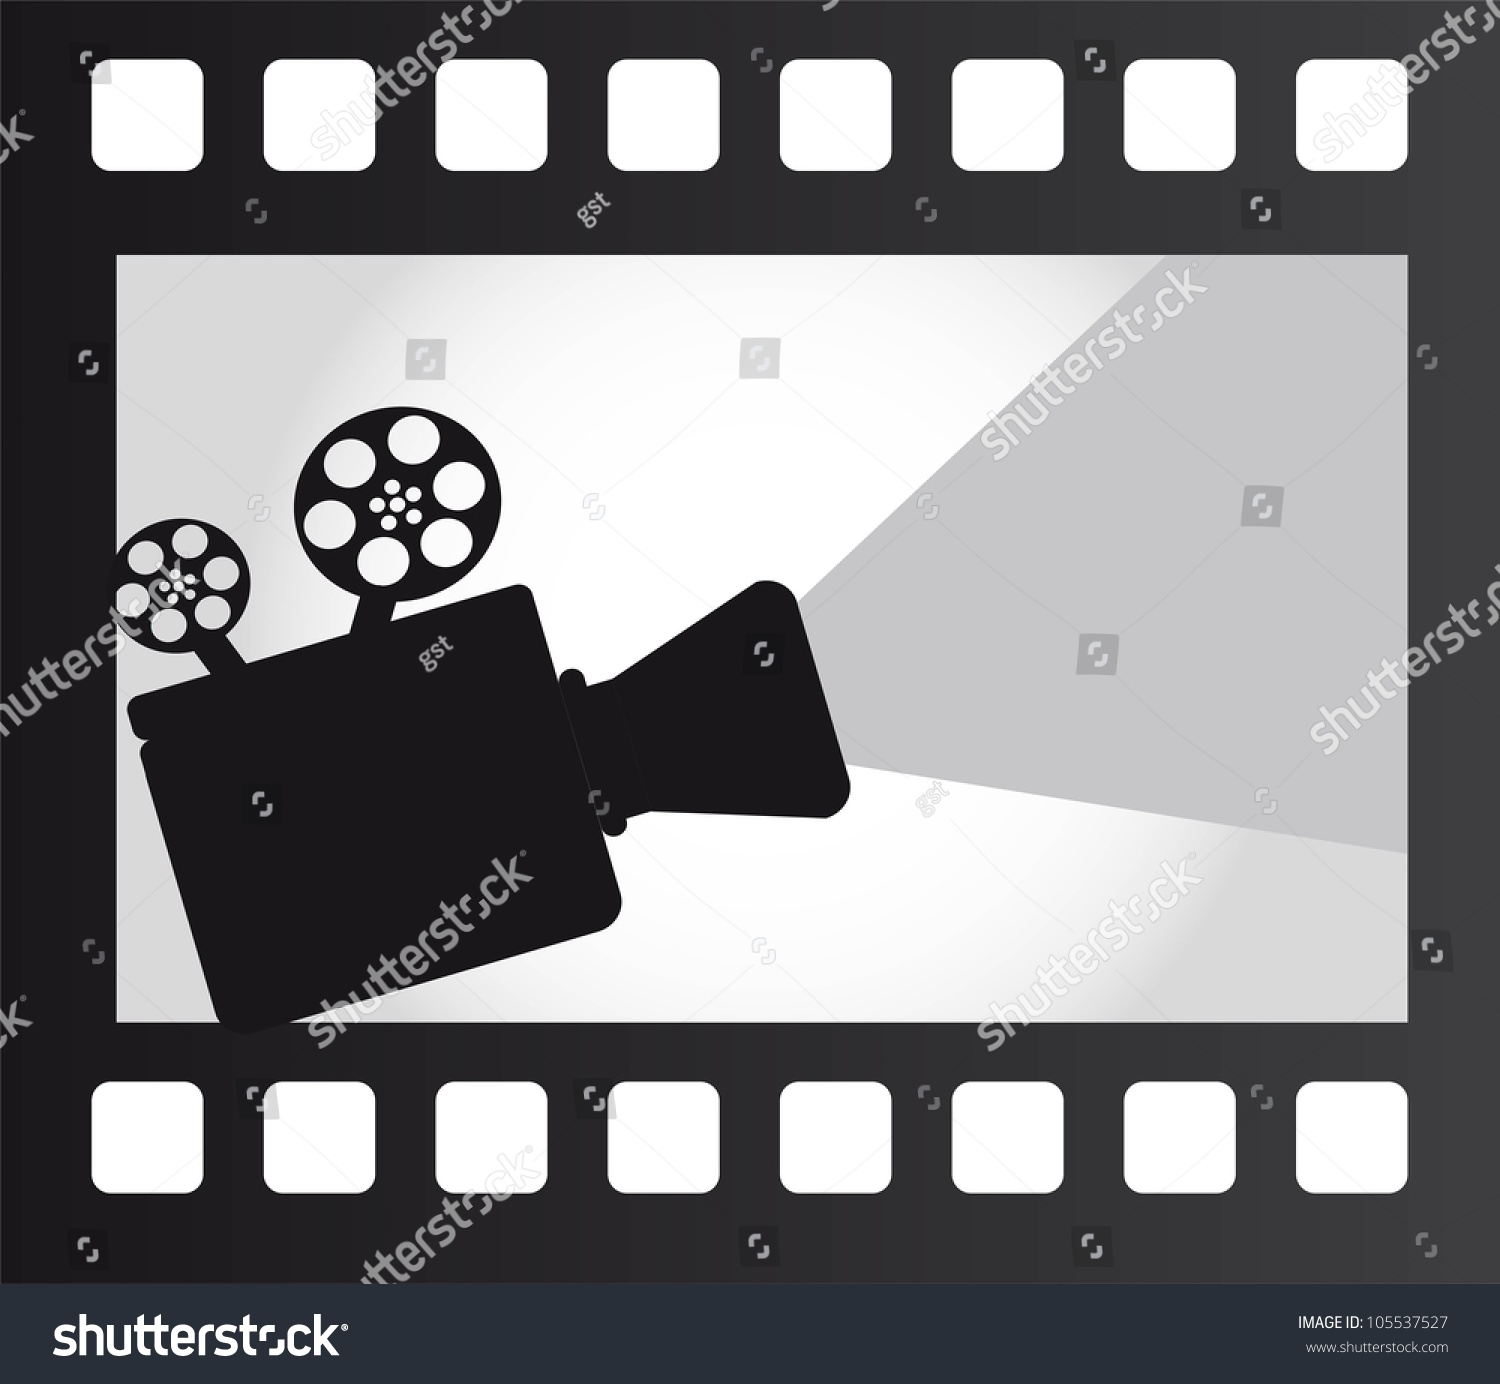 clipart of movie projector - photo #23